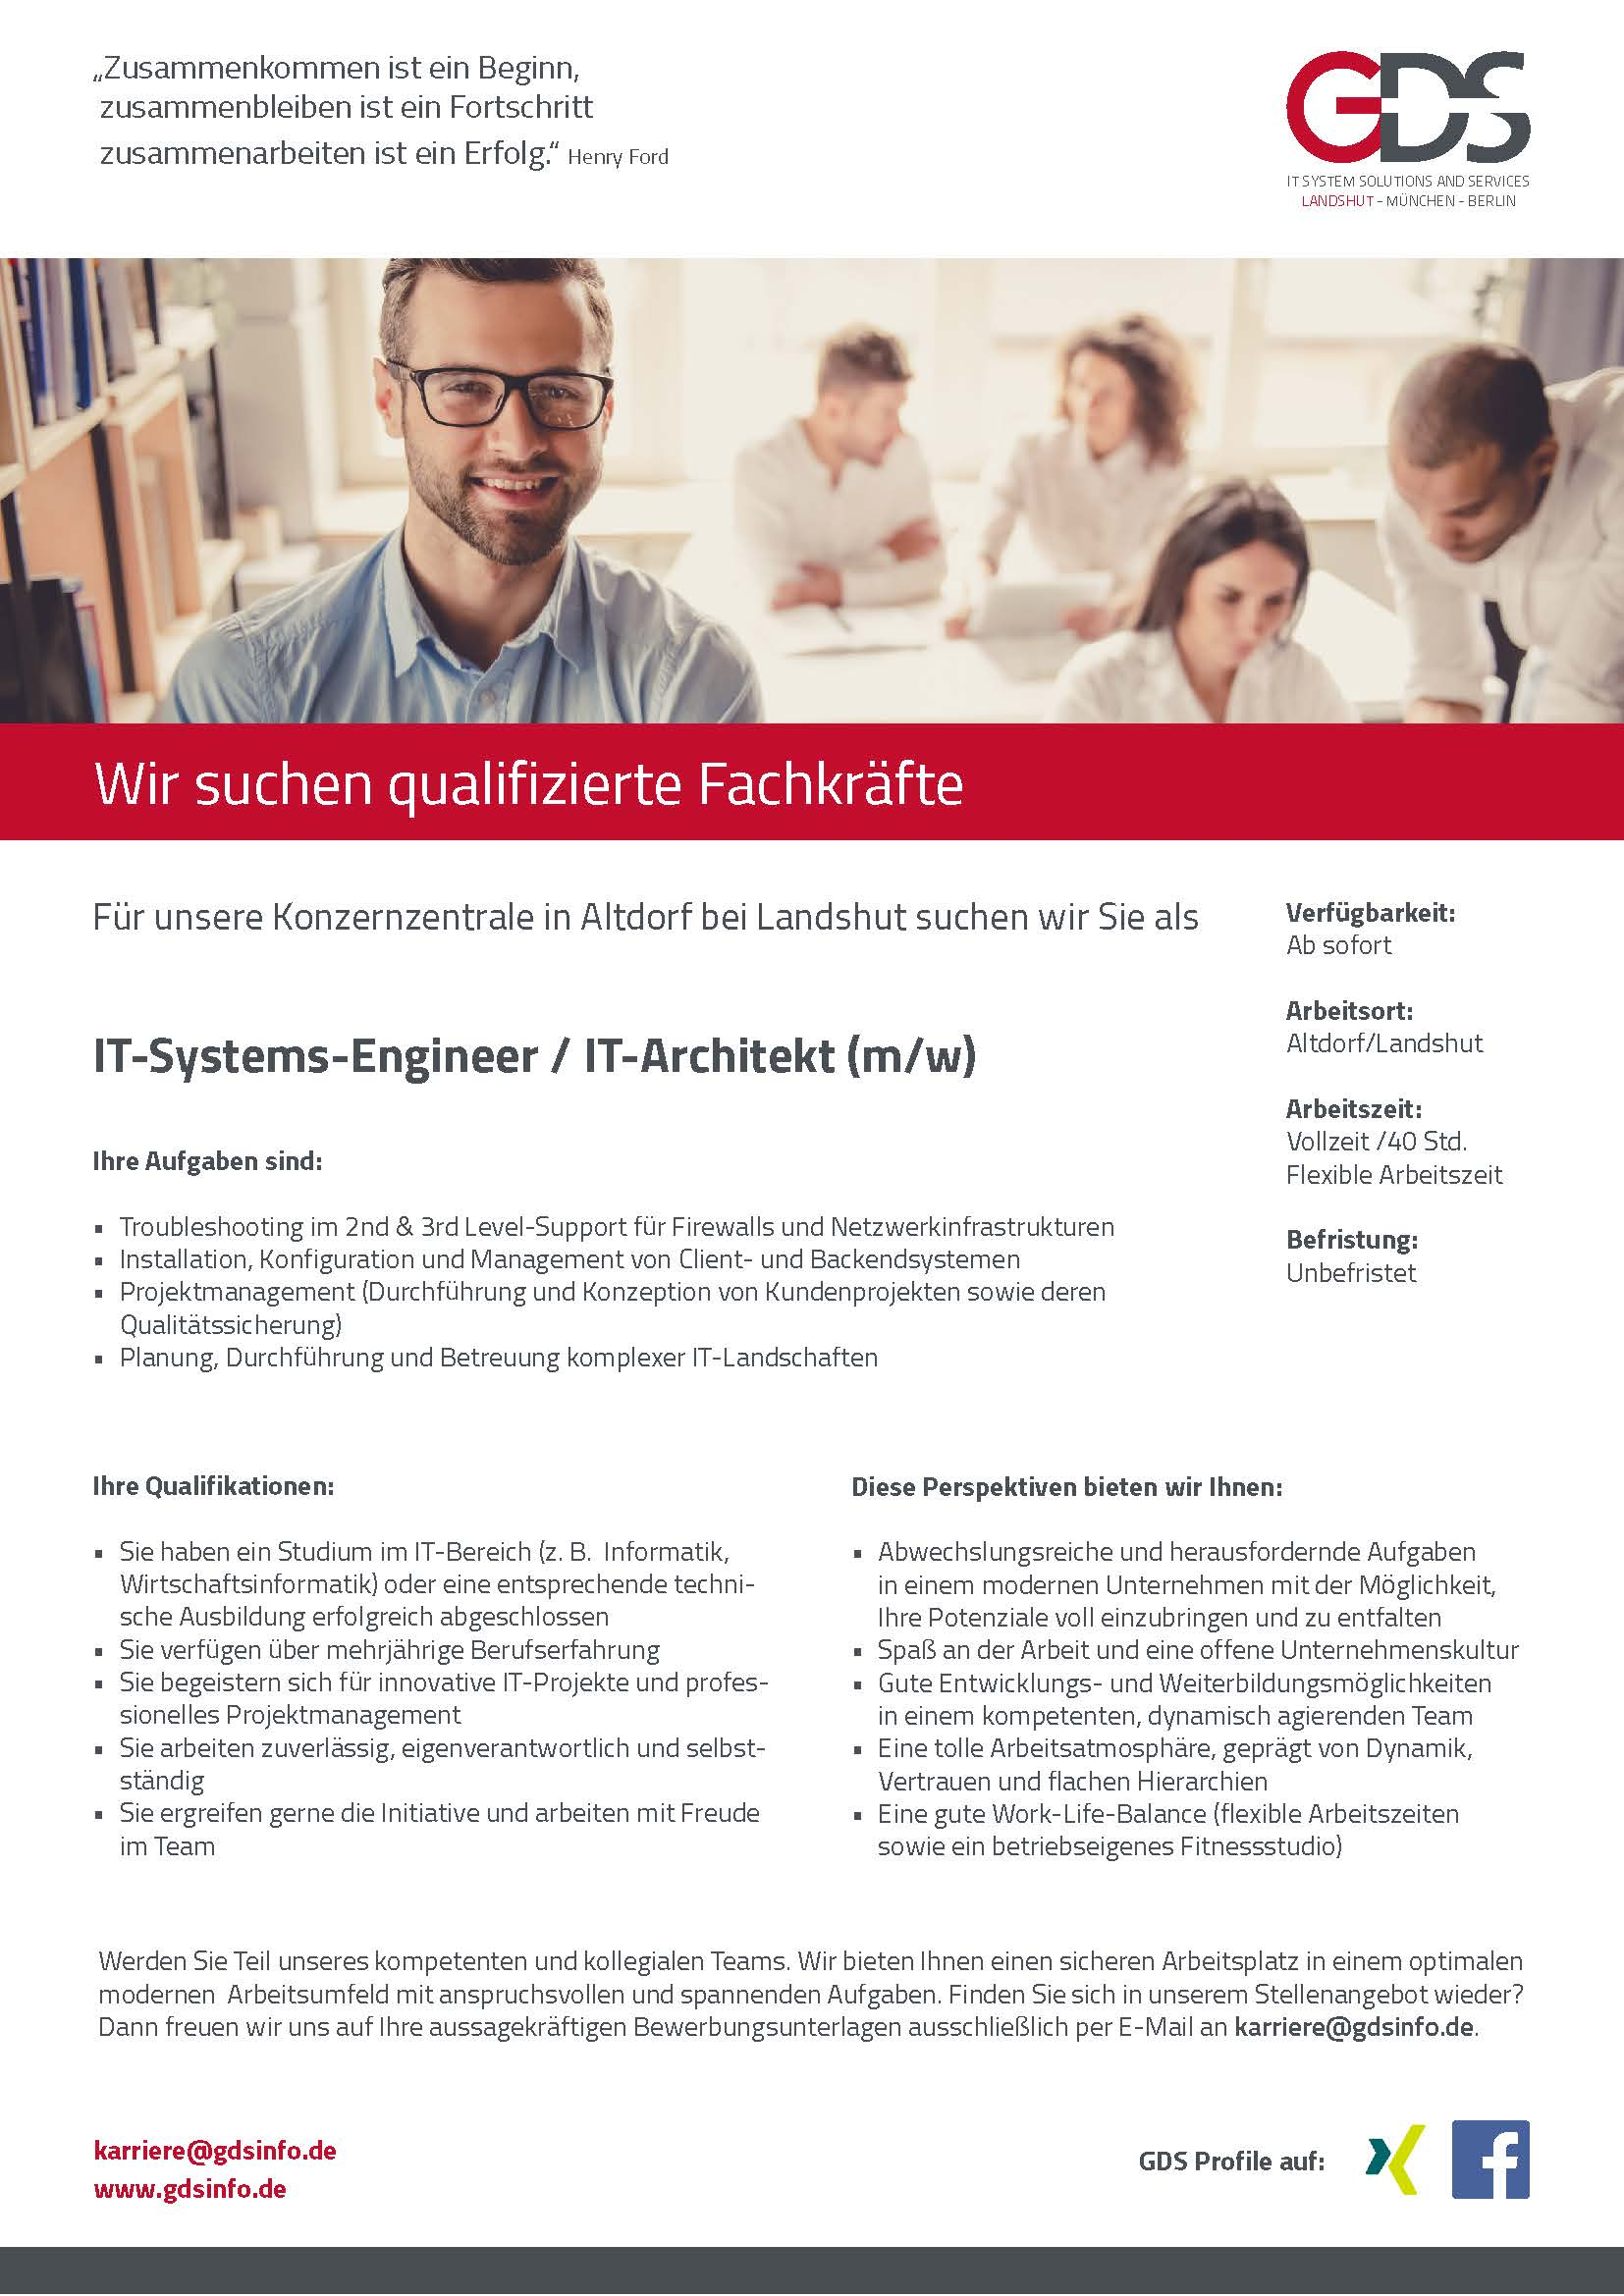 IT-Systems-Engineer / IT-Architekt (m/w) Standort Altdorf/Landshut